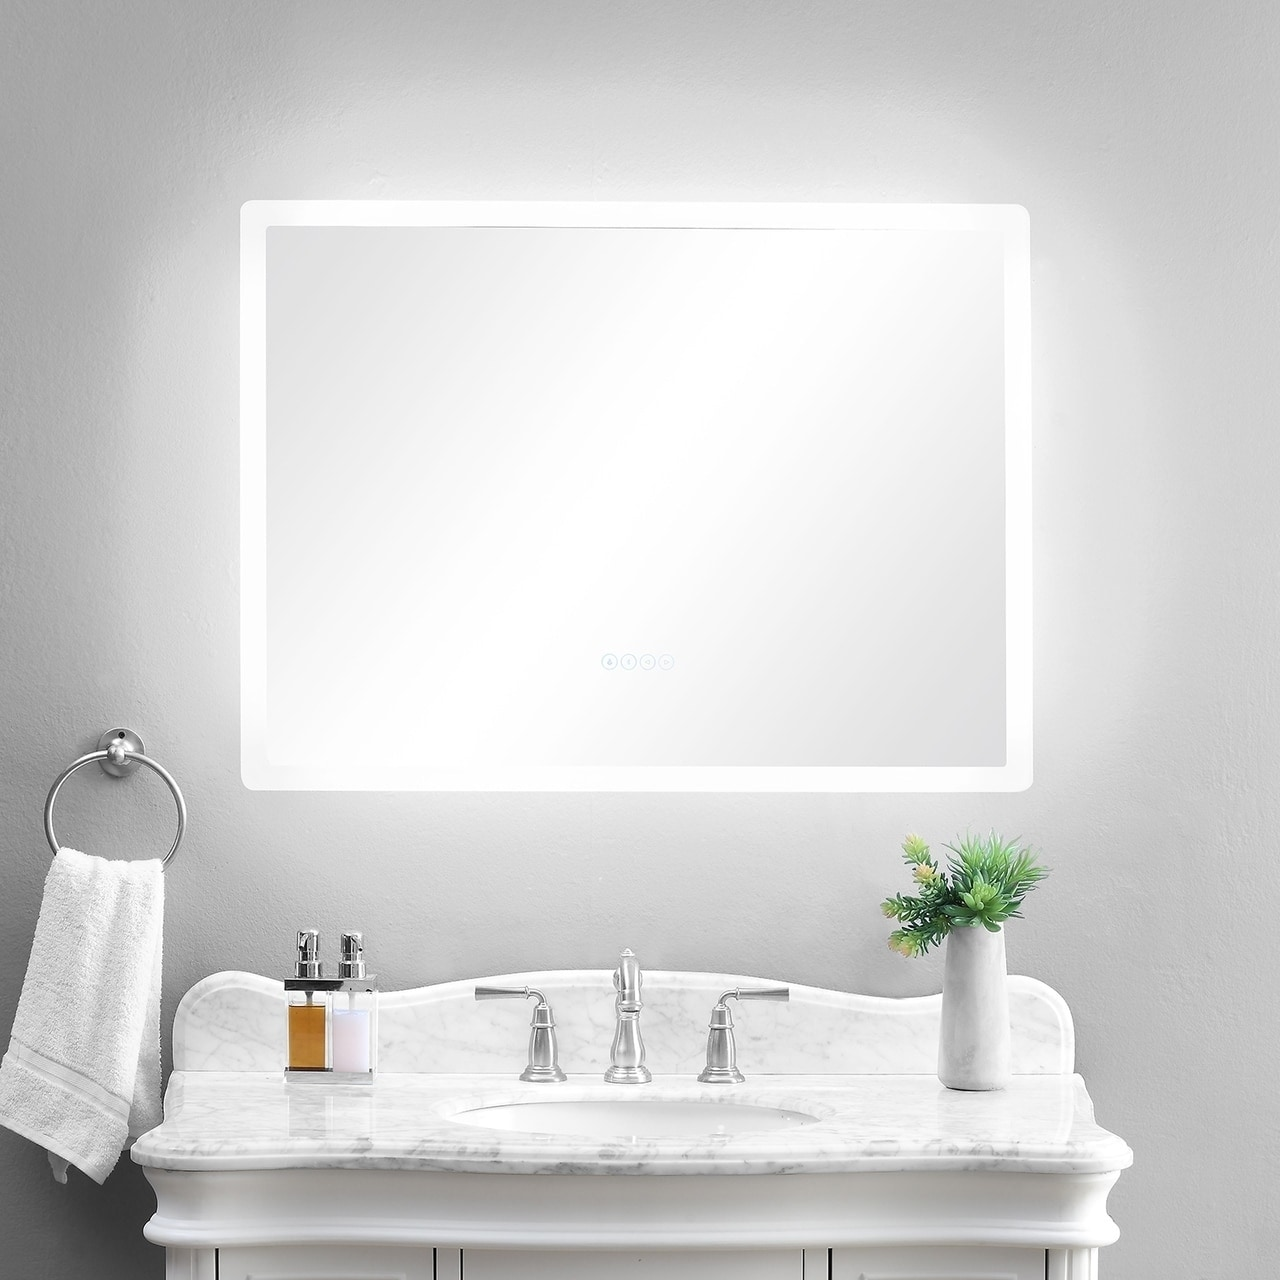 Shop smartLED Illuminated Fog-Free Bathroom Mirror with Built-In ...